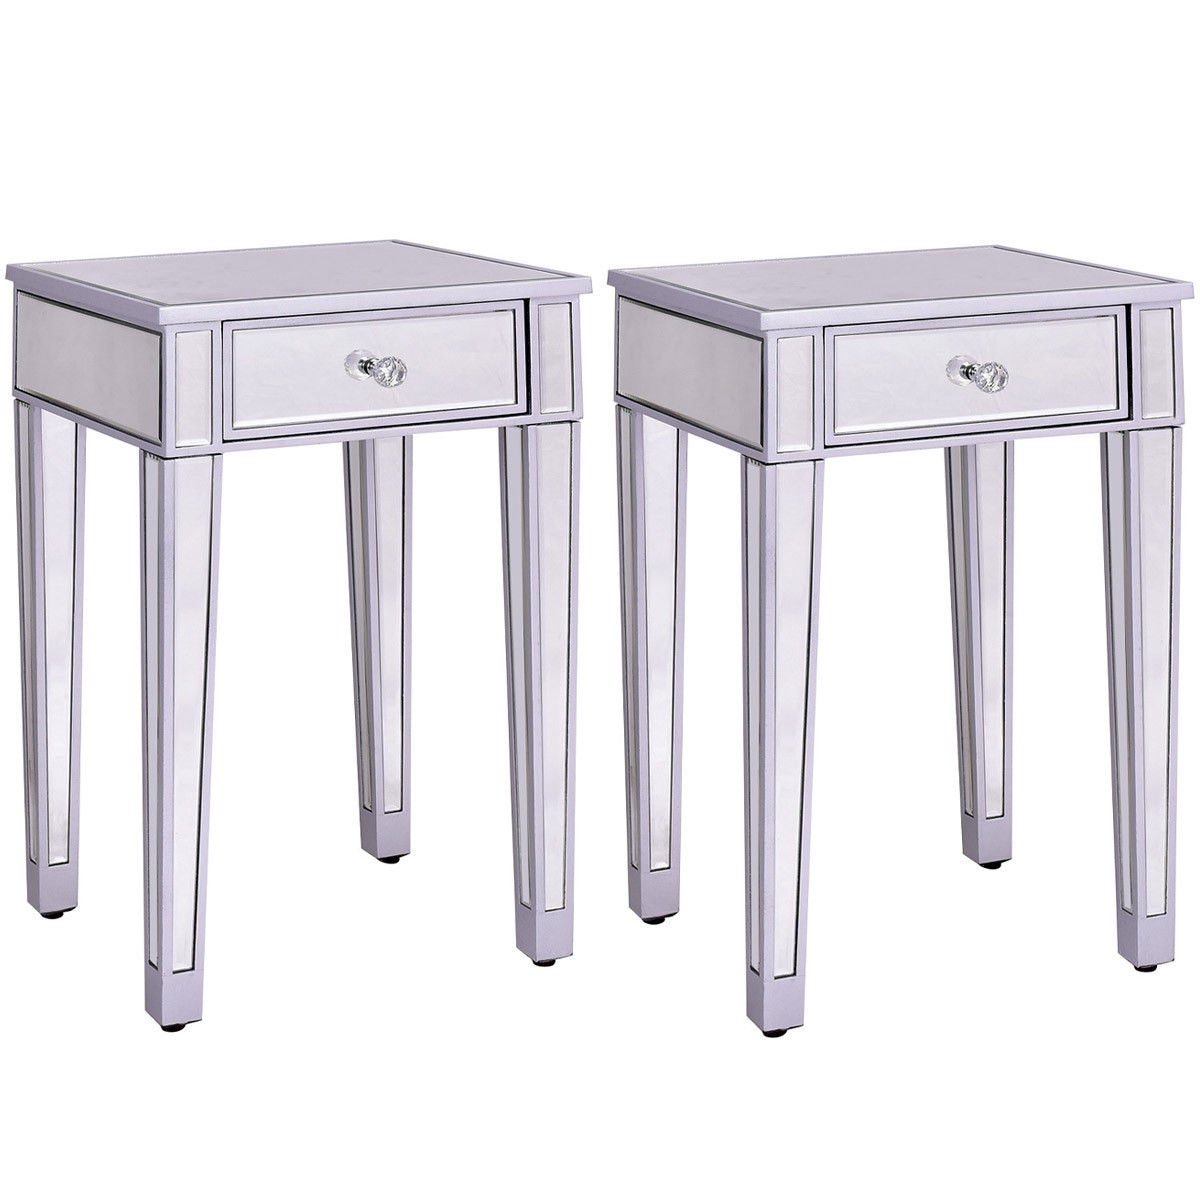 Costway 2 Pcs Mirrored Accent Table Nightstand End Table Storage Cabinet Drawer Sliver